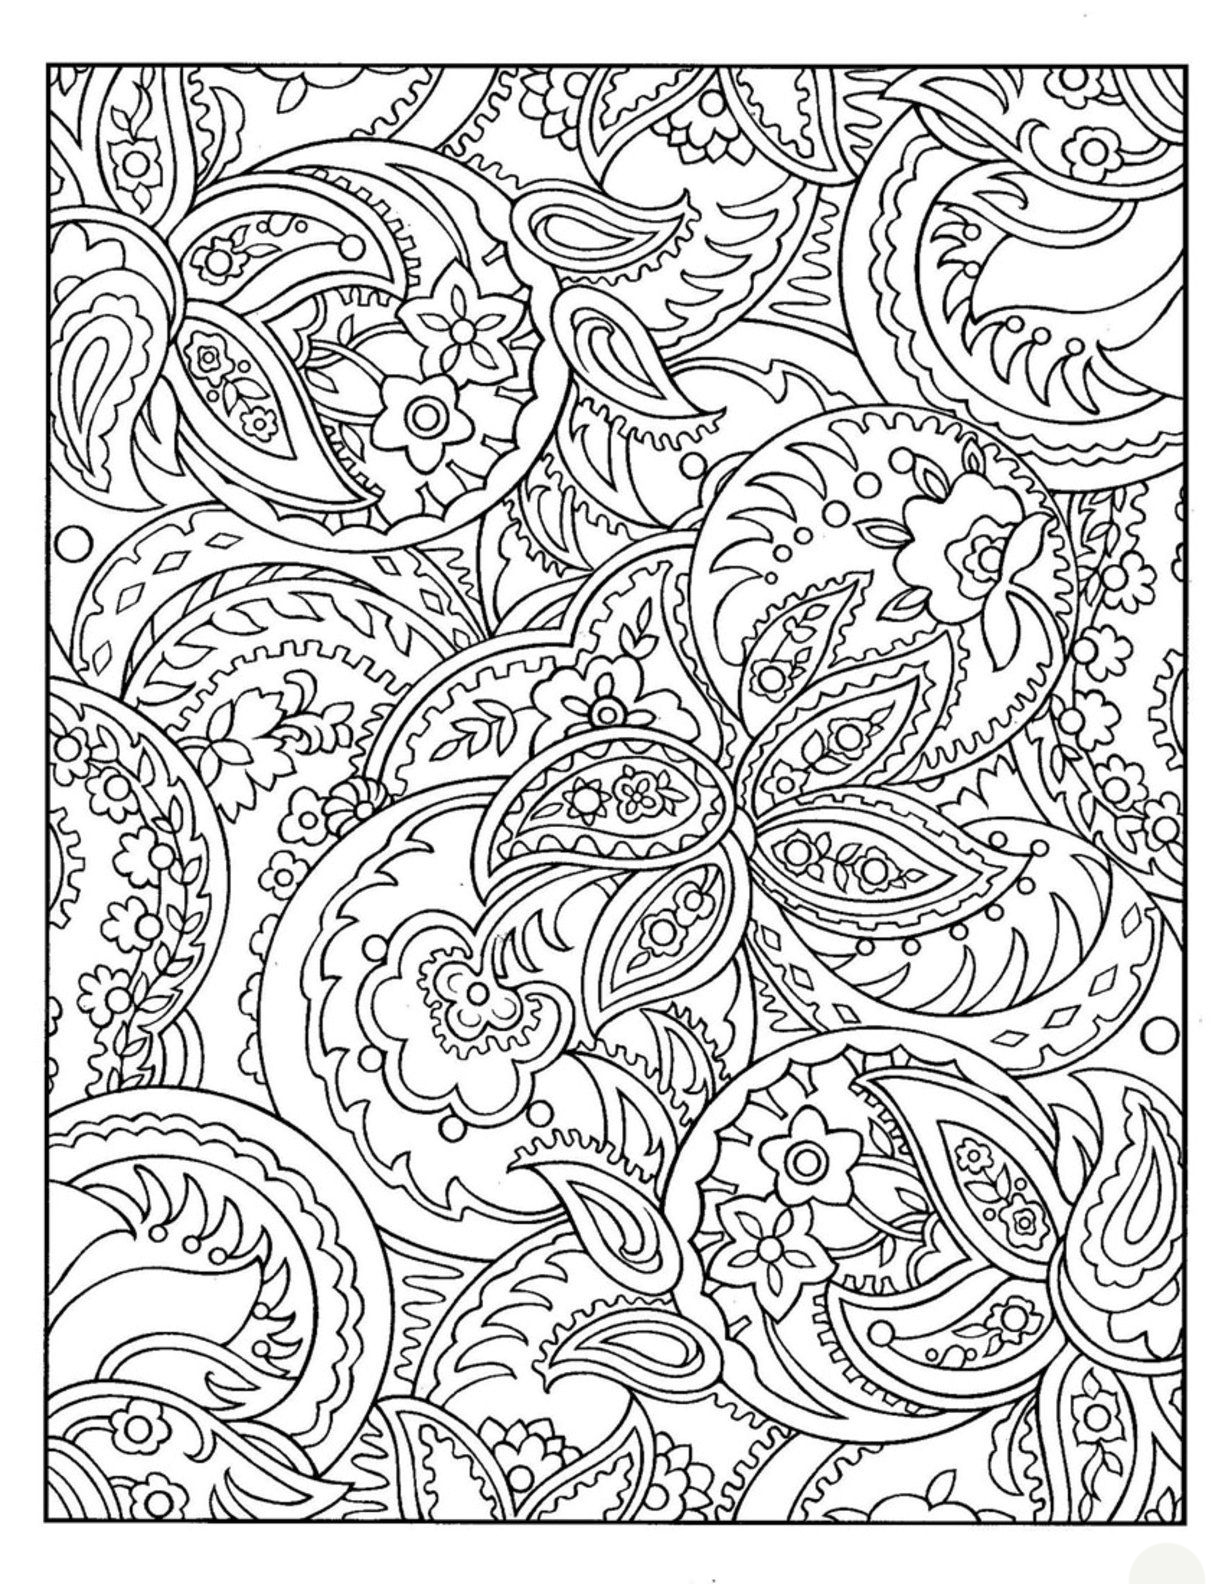 pattern coloring best for kids free complex moster jam colrs crayola caddy sparkley coloring pages Pattern Coloring Page